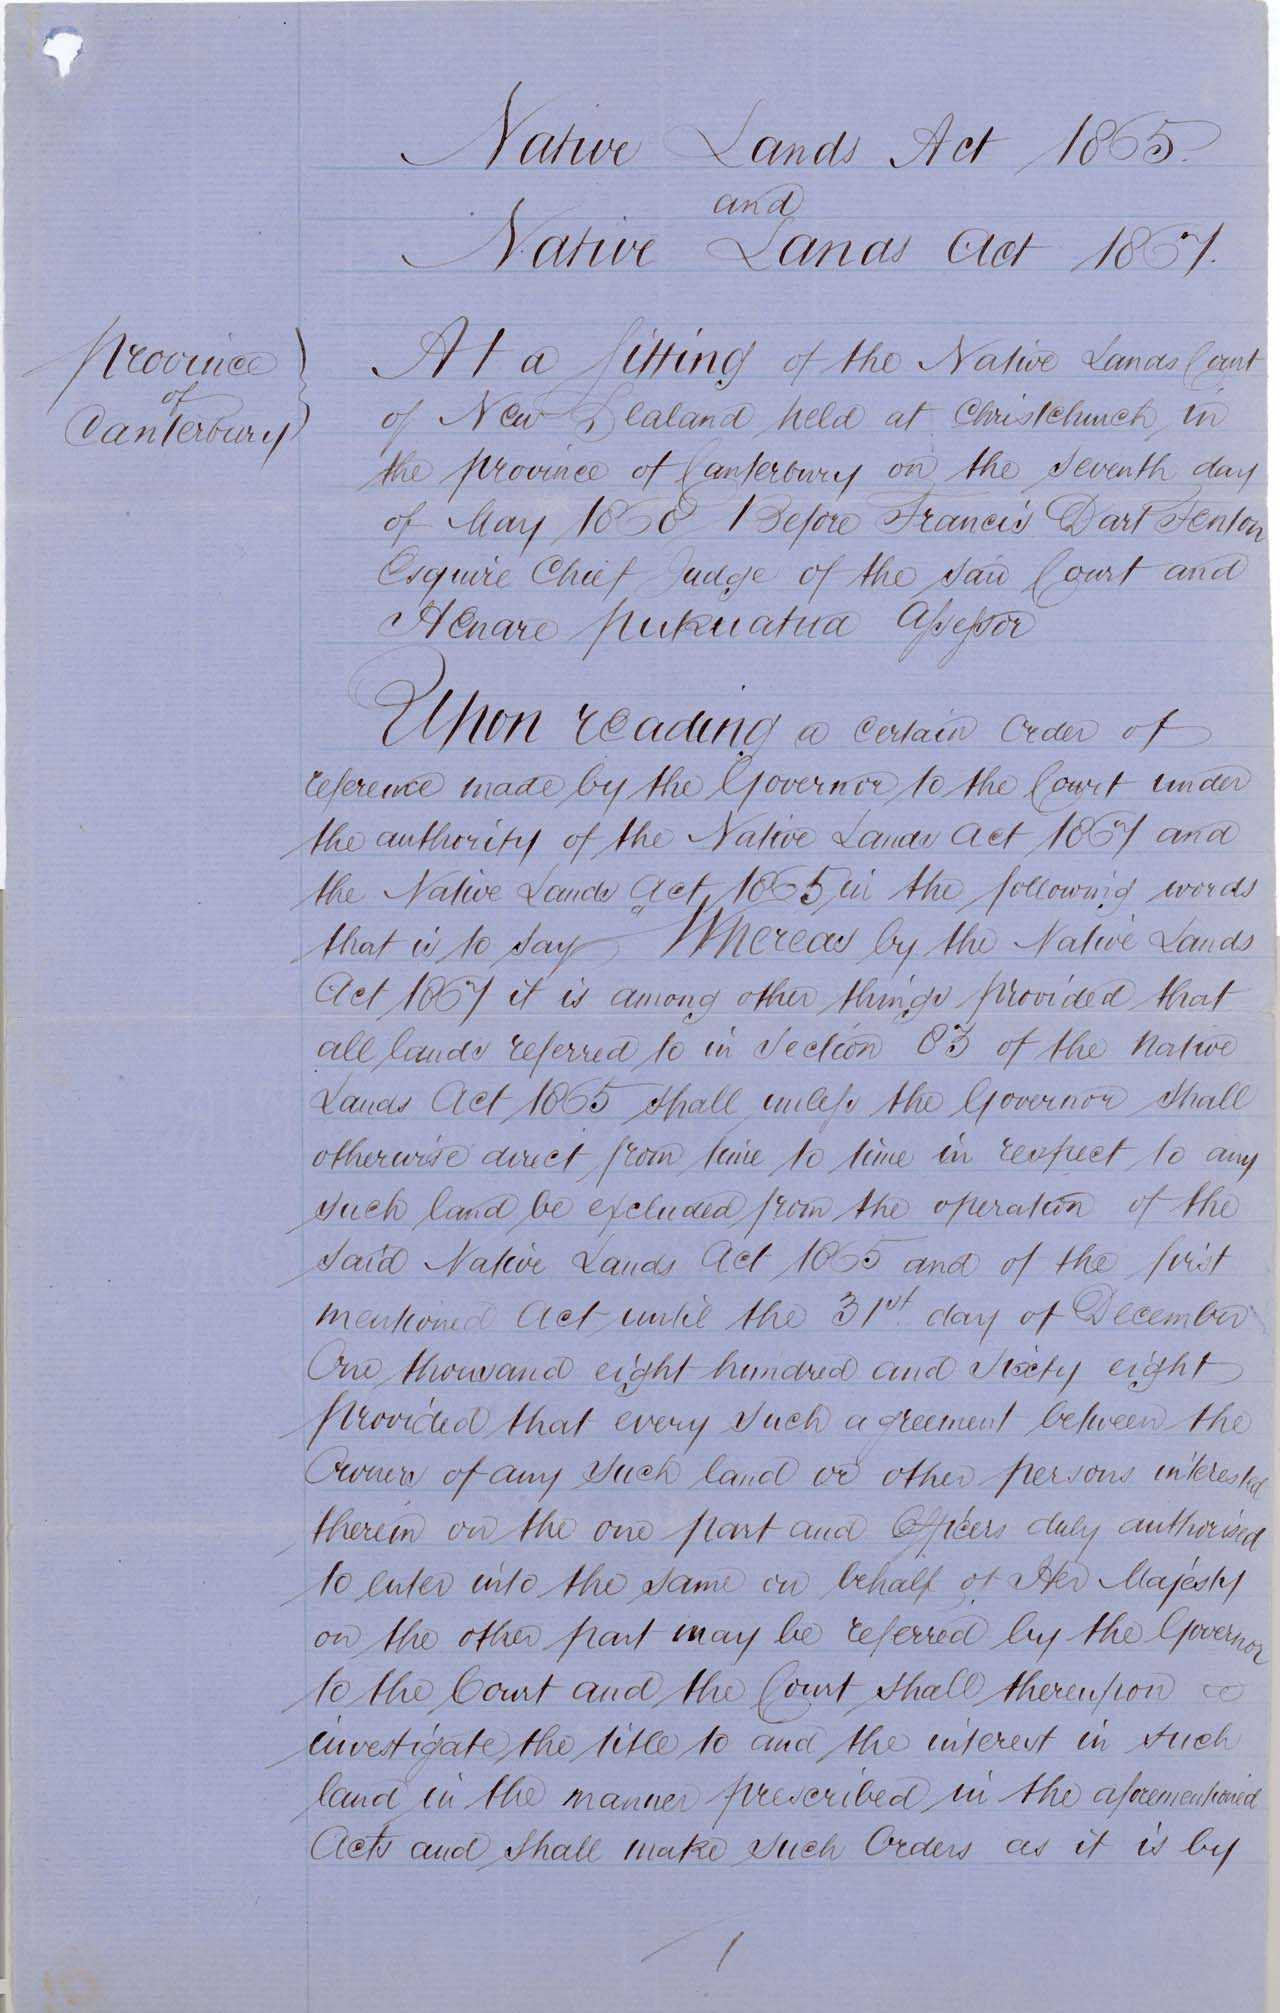 Descriptions - Taumutu Reserves awarded in 1868 - Page 1